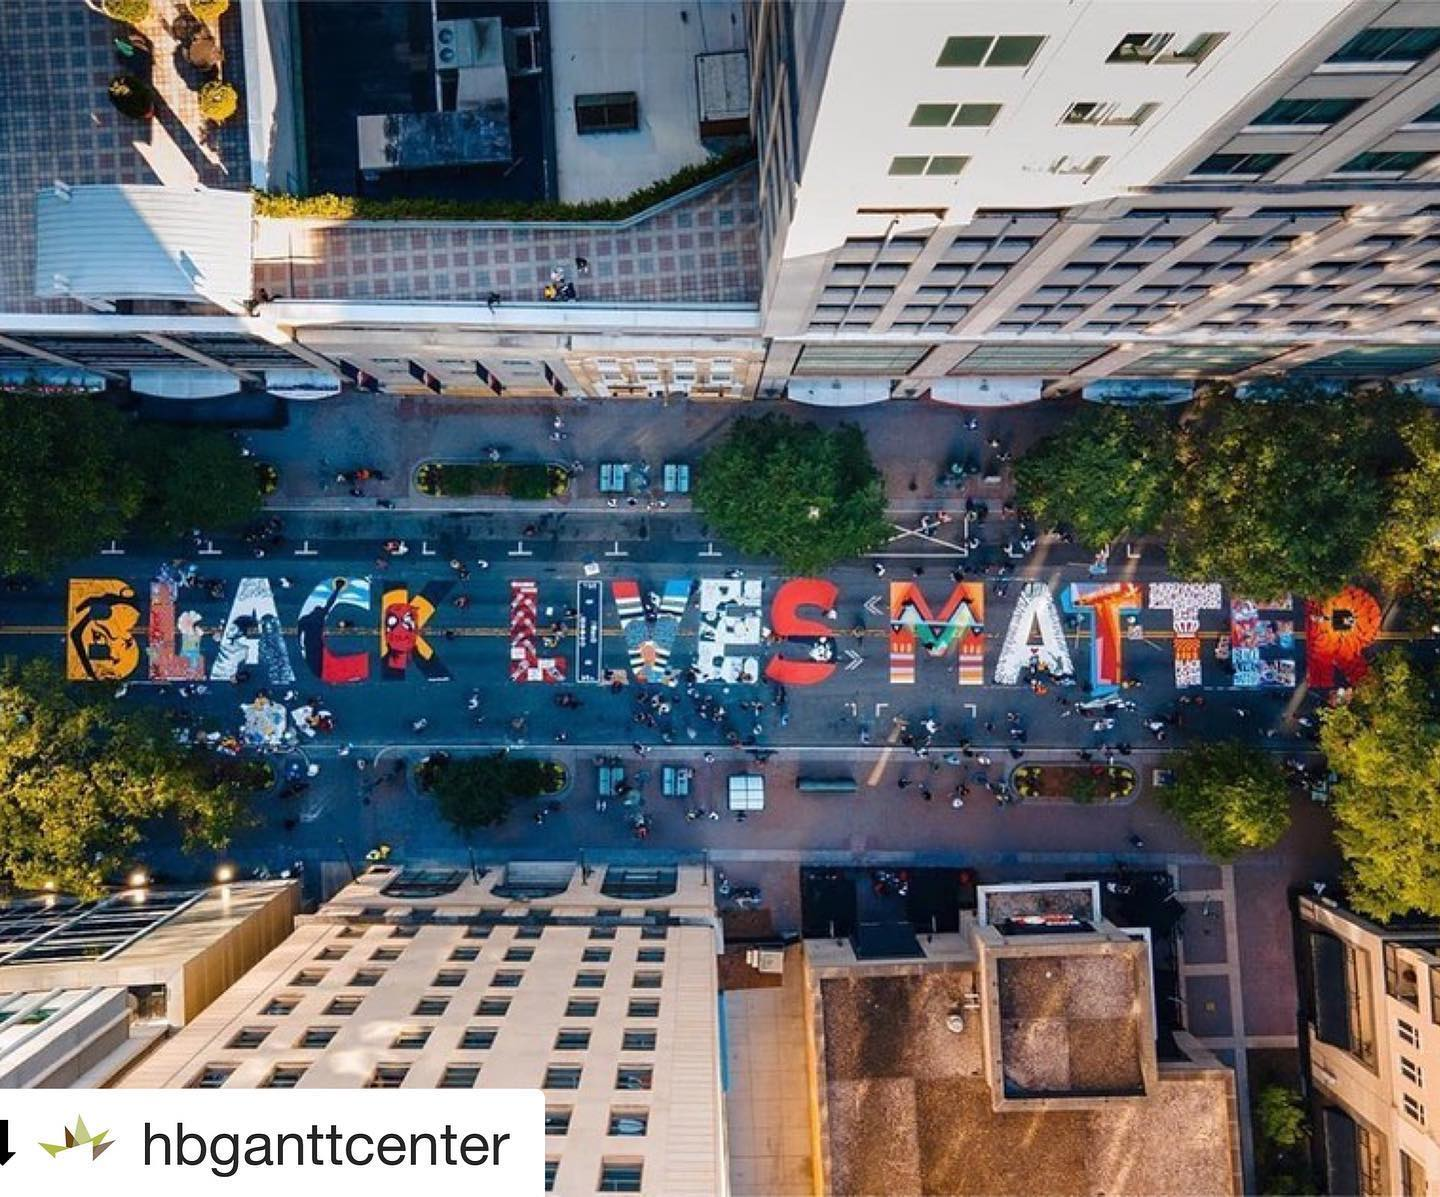 Amplify and repost from  @hbganttcenter ・・・ Black Movements Expressed Through Art Truly are Forever. Thanks to the @hbganttcenter for listing all artists for each letter( see below) . . . ARTISTS B- @dammit_wesley  L- @dakotahaiyanna  A- @shin.tytsumaki  C- @artbyabel  K-@2gzandcountin  L- @arko.clt @owl.clt  I- @thekylemosher @tragiczack  V- @fk.creative @lovoniaparks  E- @kmuiii  S- @marcus_kiser @jason_woodberry  M- @gardenofjourney  A- @matthewclayburn  T- @frankie.zombie_  T- @chdwckart  E- @jagolactus_  R- @daricalamari . .  Drone Imagery - @iamdonaldwilson and @maleekloyd . .  .